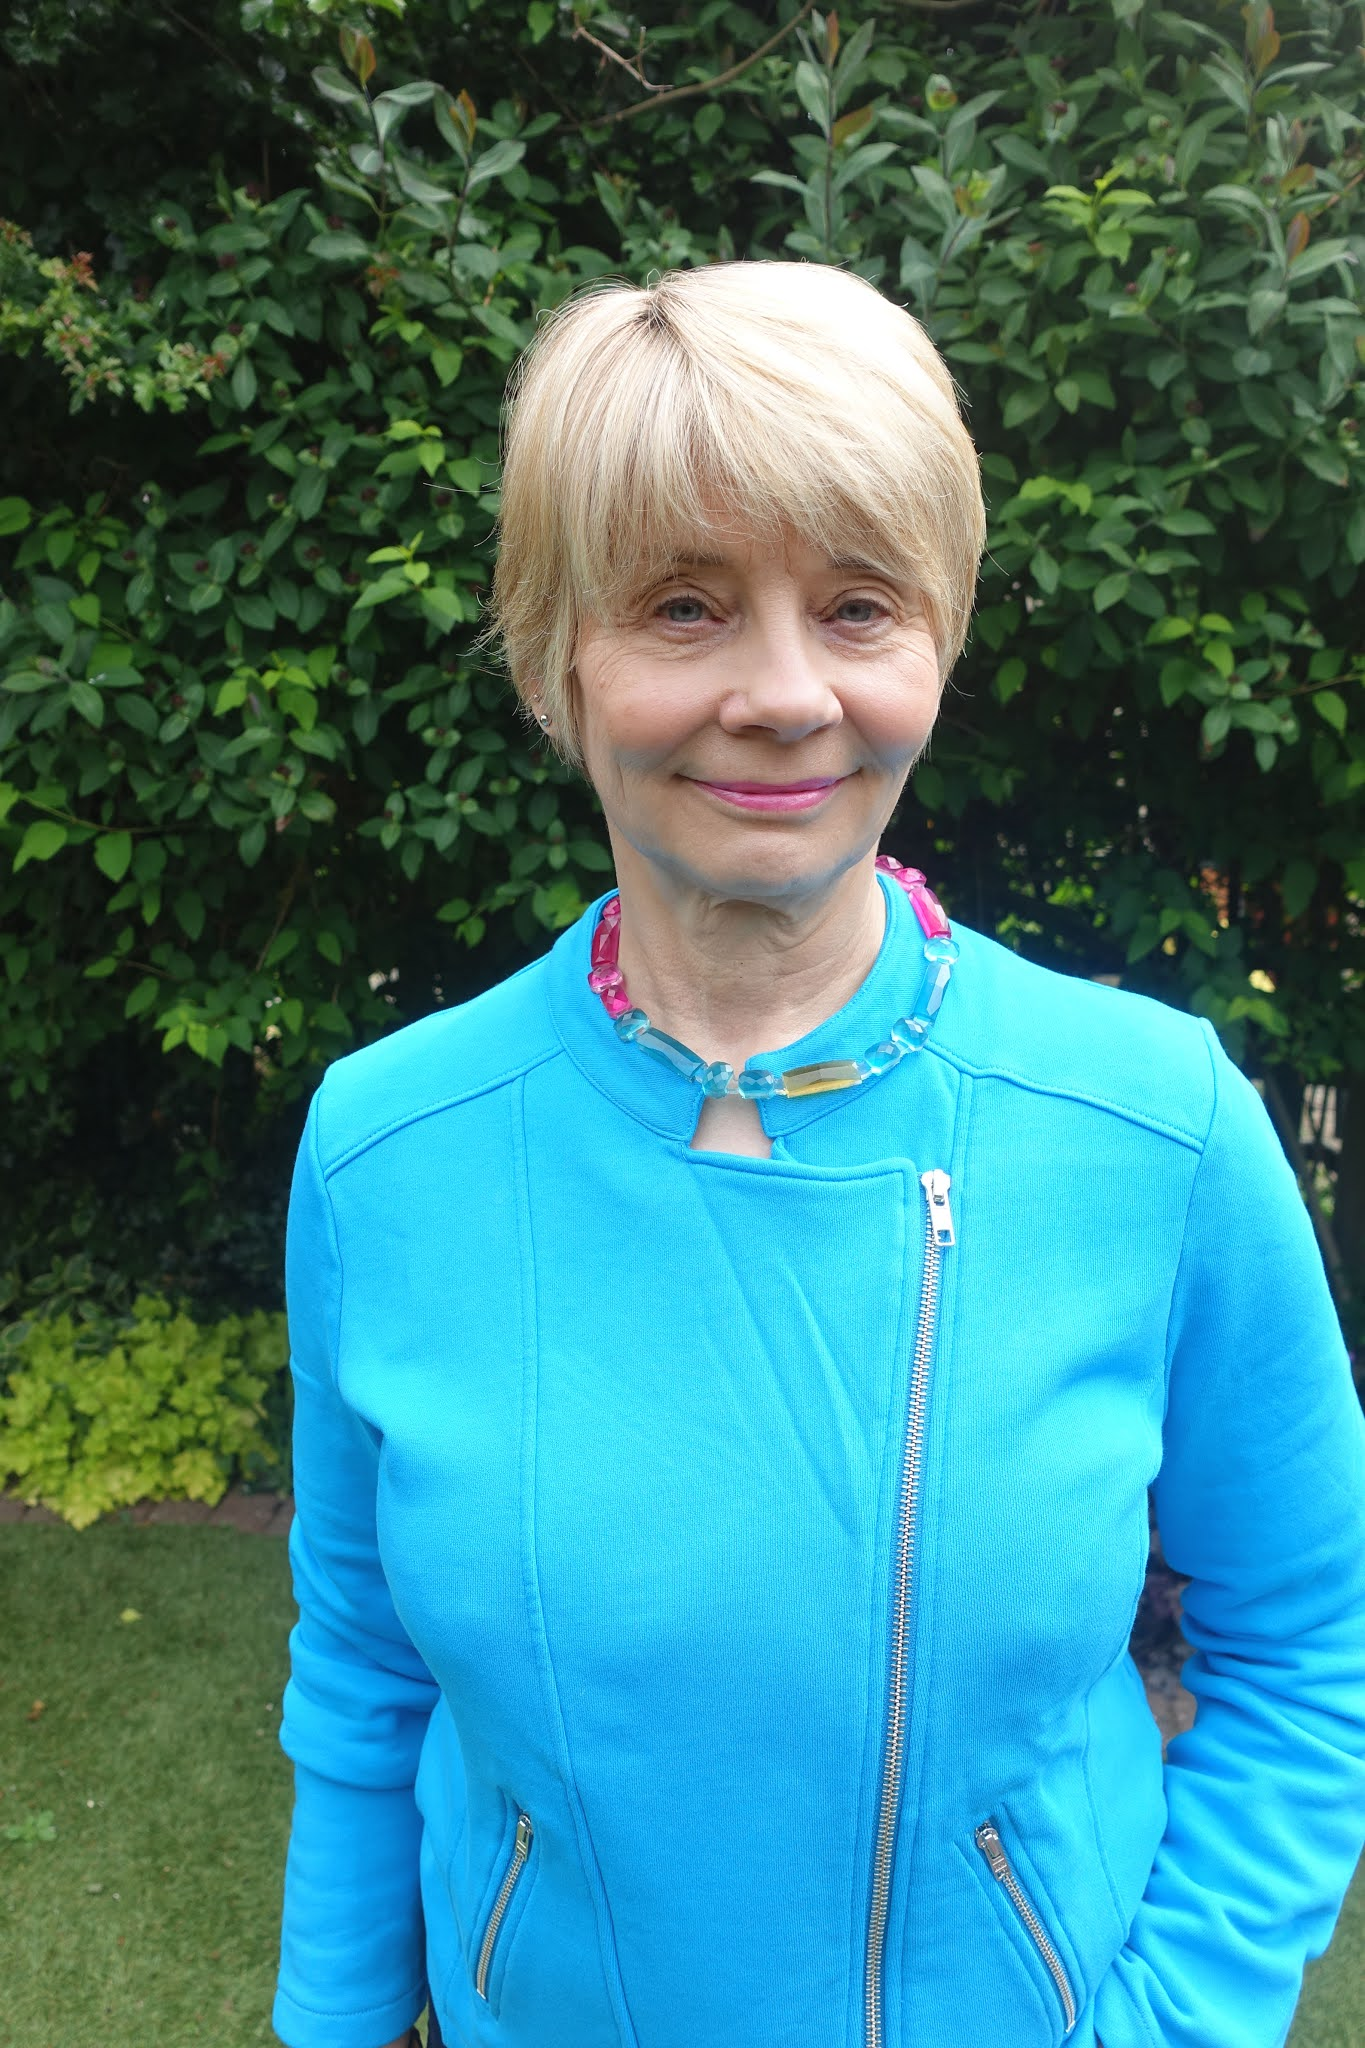 Kettlewell's Blue Jewel Chloe jacket worn by blogger Gail Hanlon from Is This Mutton